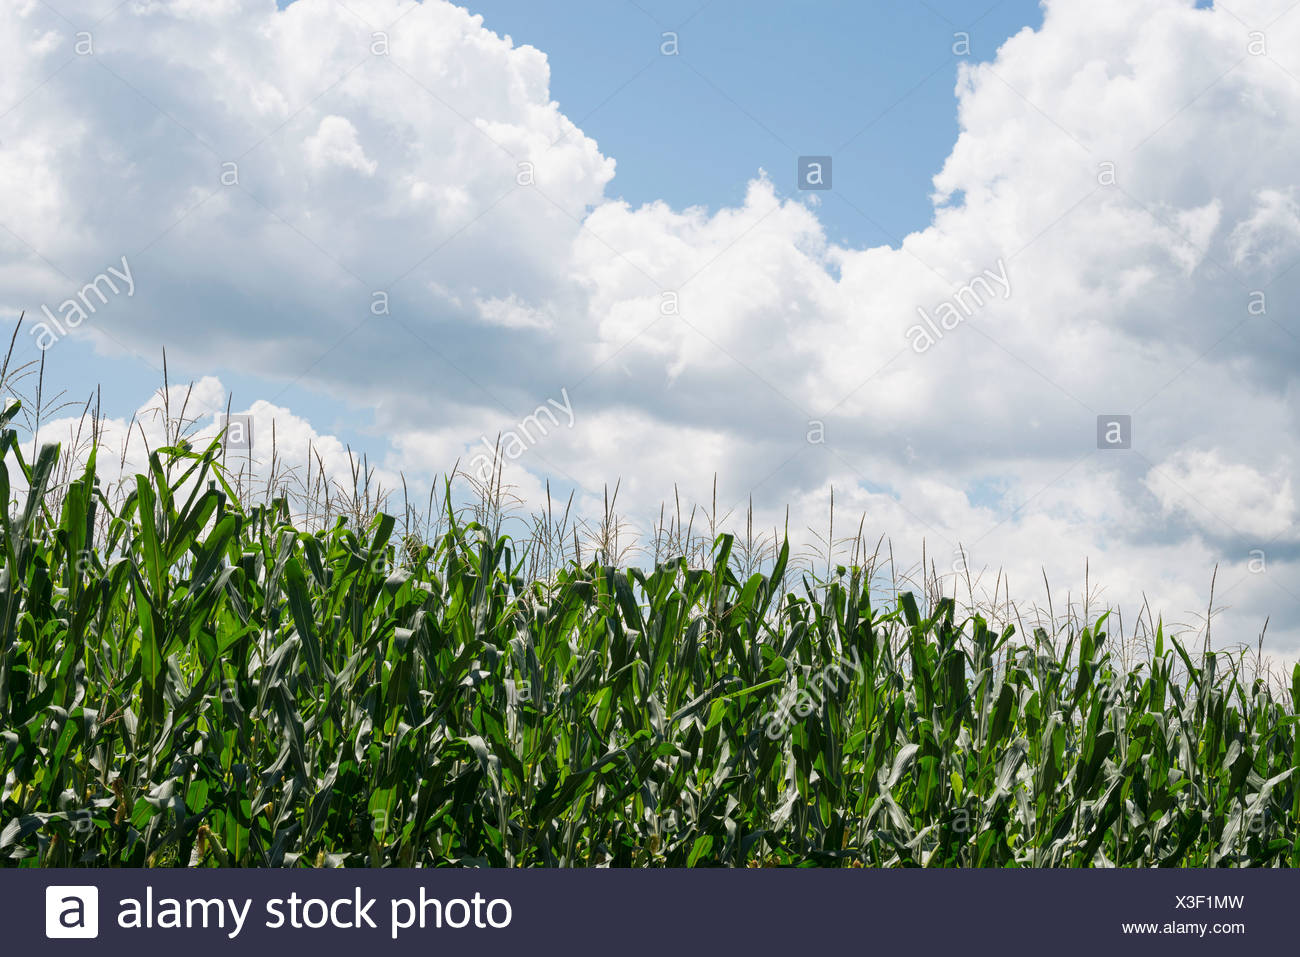 Tall plants in a field, maize corn growing. - Stock Image